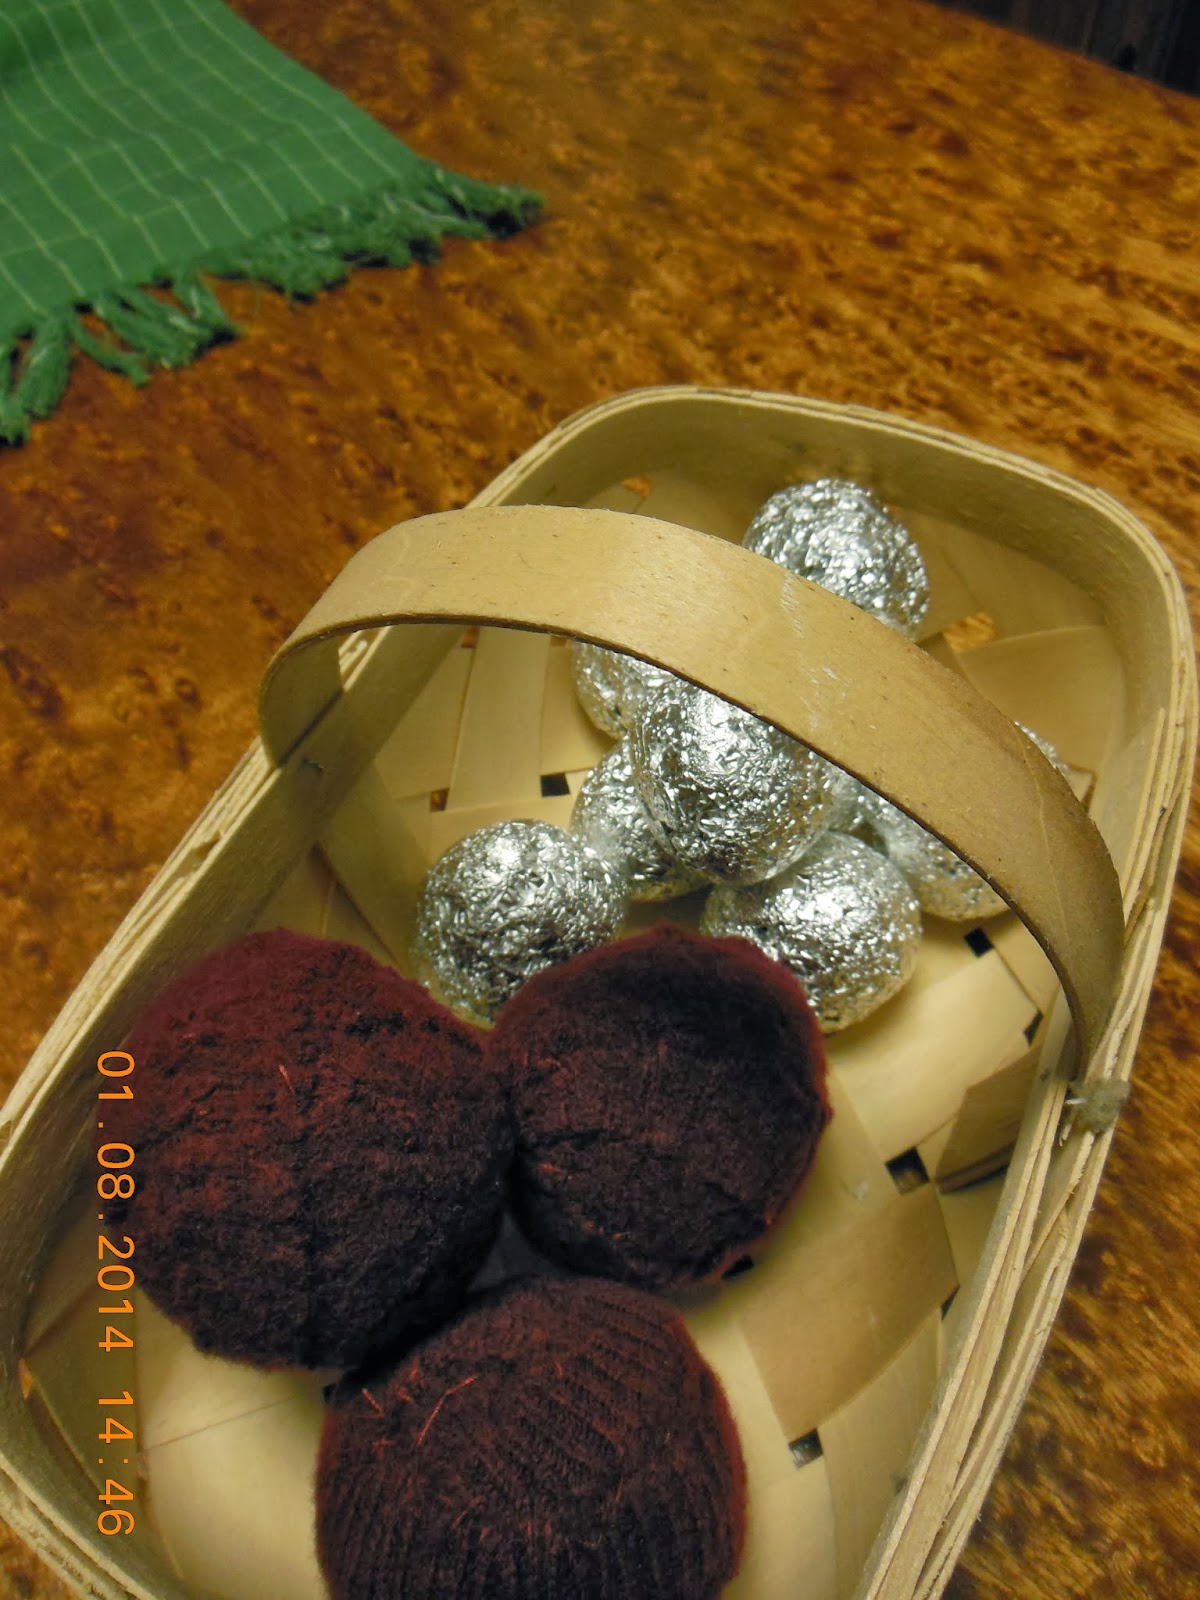 How To Make Homemade Woolen Dryer Balls Eliminate Dryer